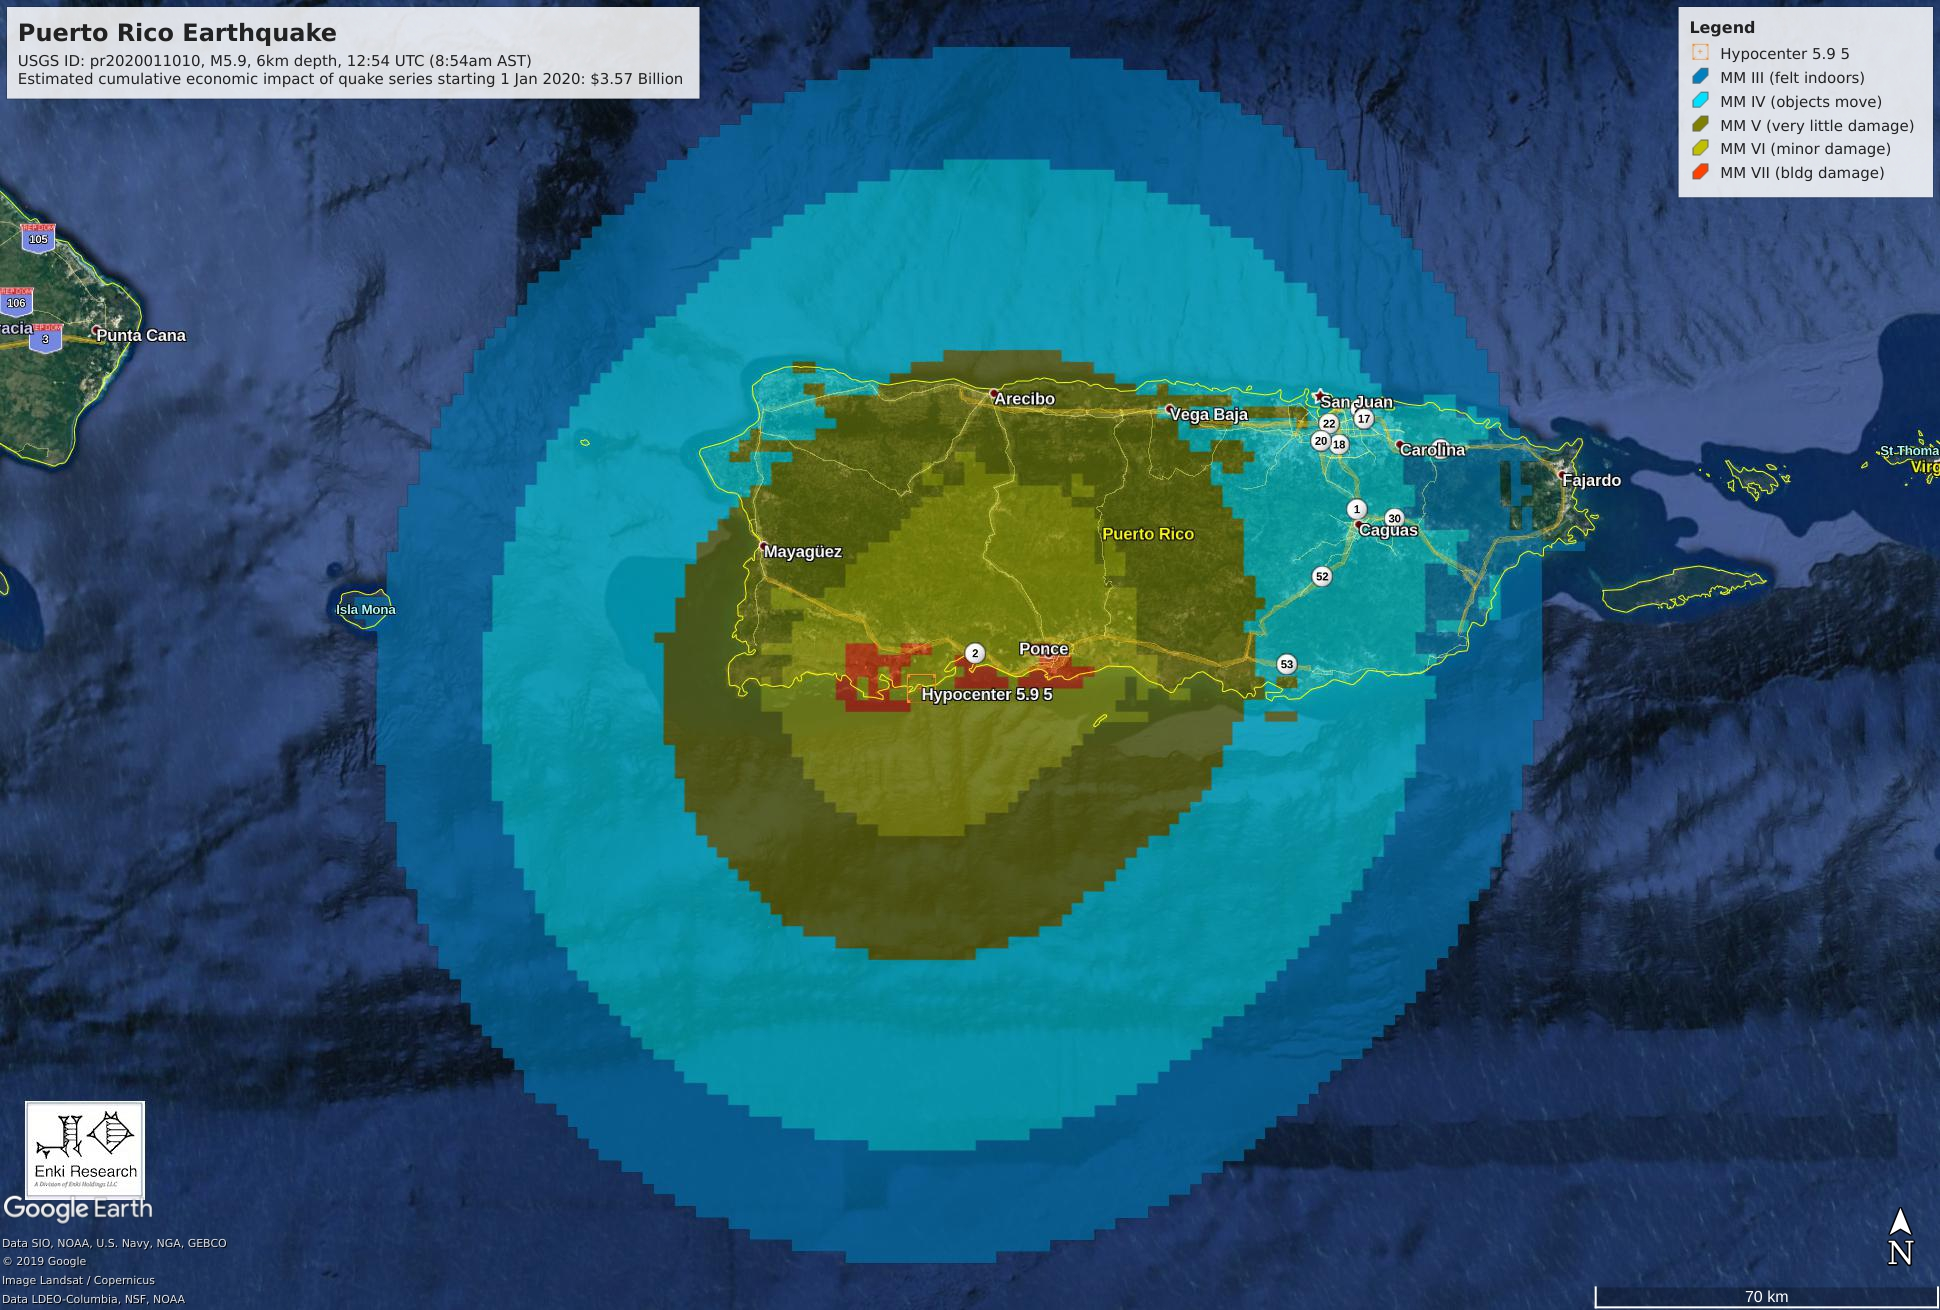 Another Strong Earthquake In Puerto Rico Sat 11 Jan 2020 Enki